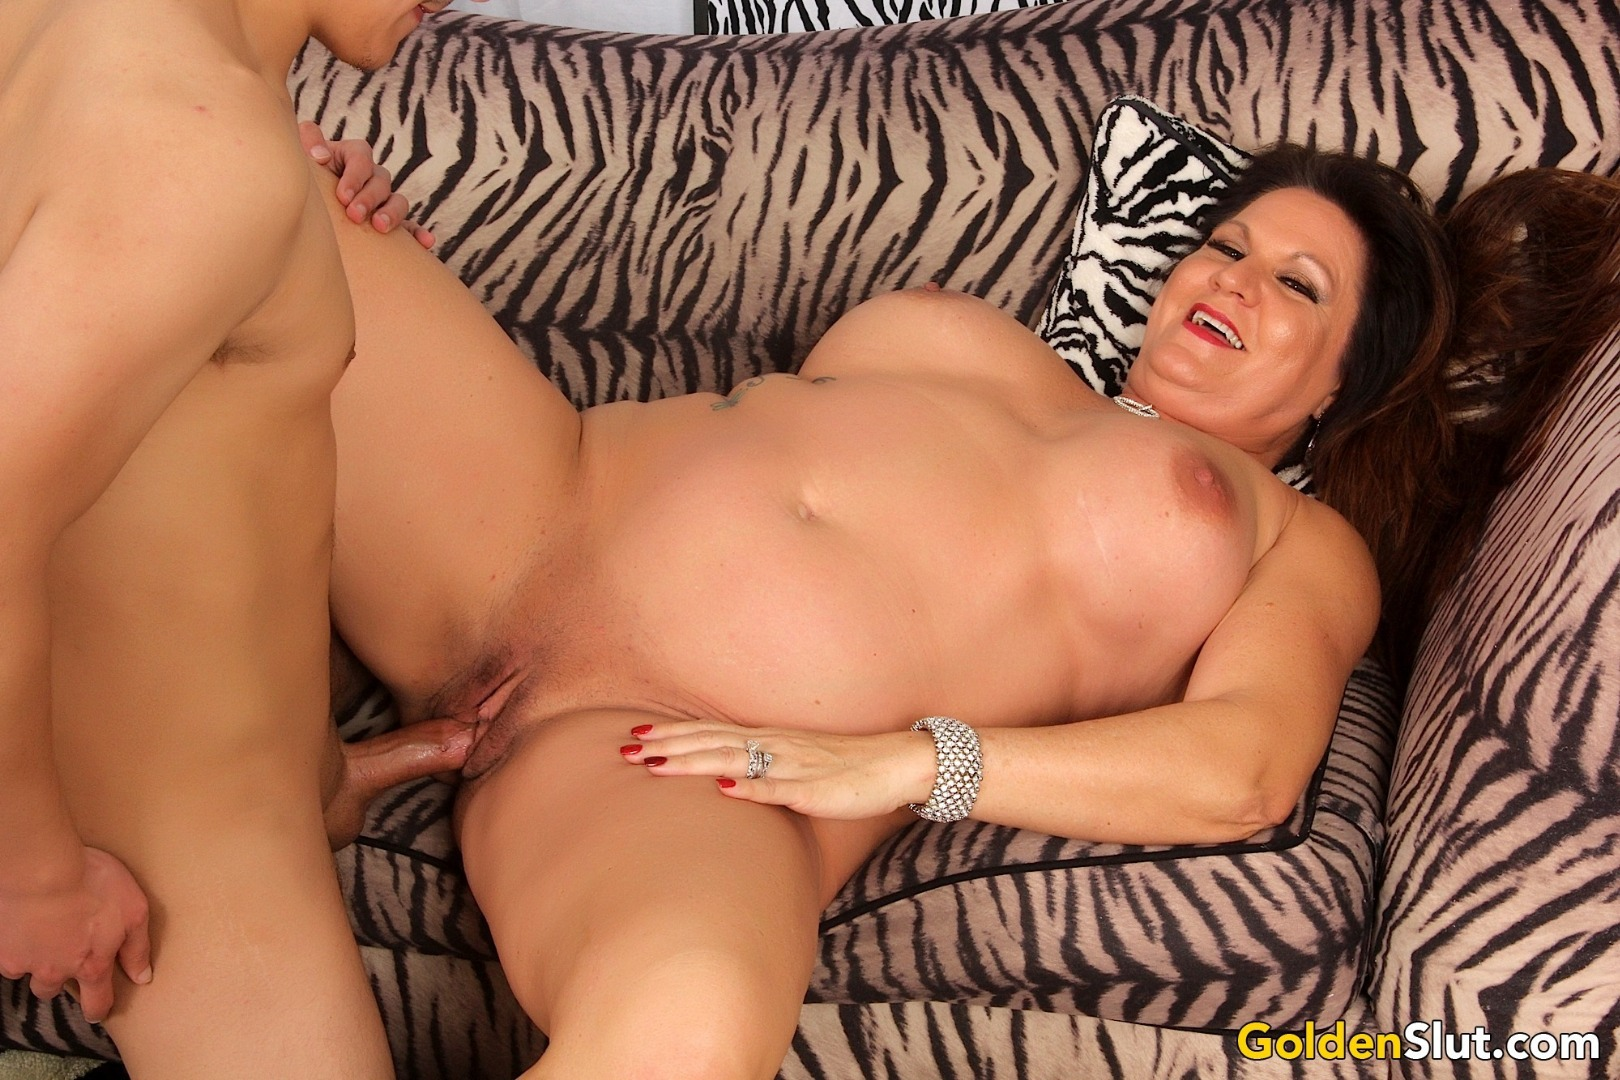 saggy tits nerd milf rides a endowed black lover in bed Mature slut Leylani Wood rides a younger dick #Mature #MatureWoman #Old #Hardcore #Brunette #Chubby